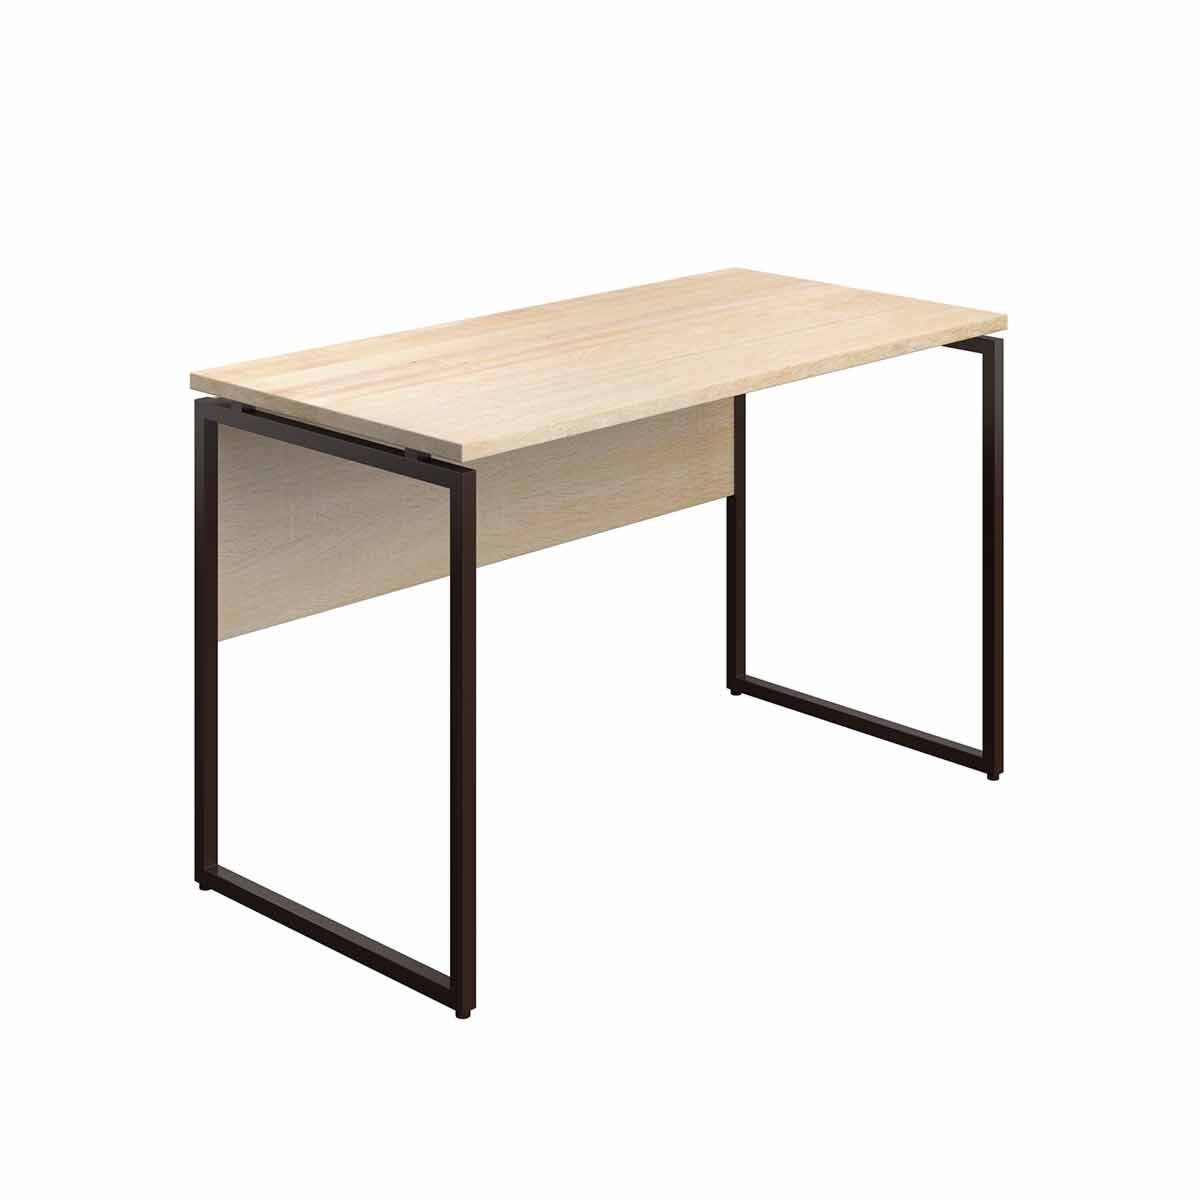 TC Office SOHO Home Working Desk with Modesty Panel